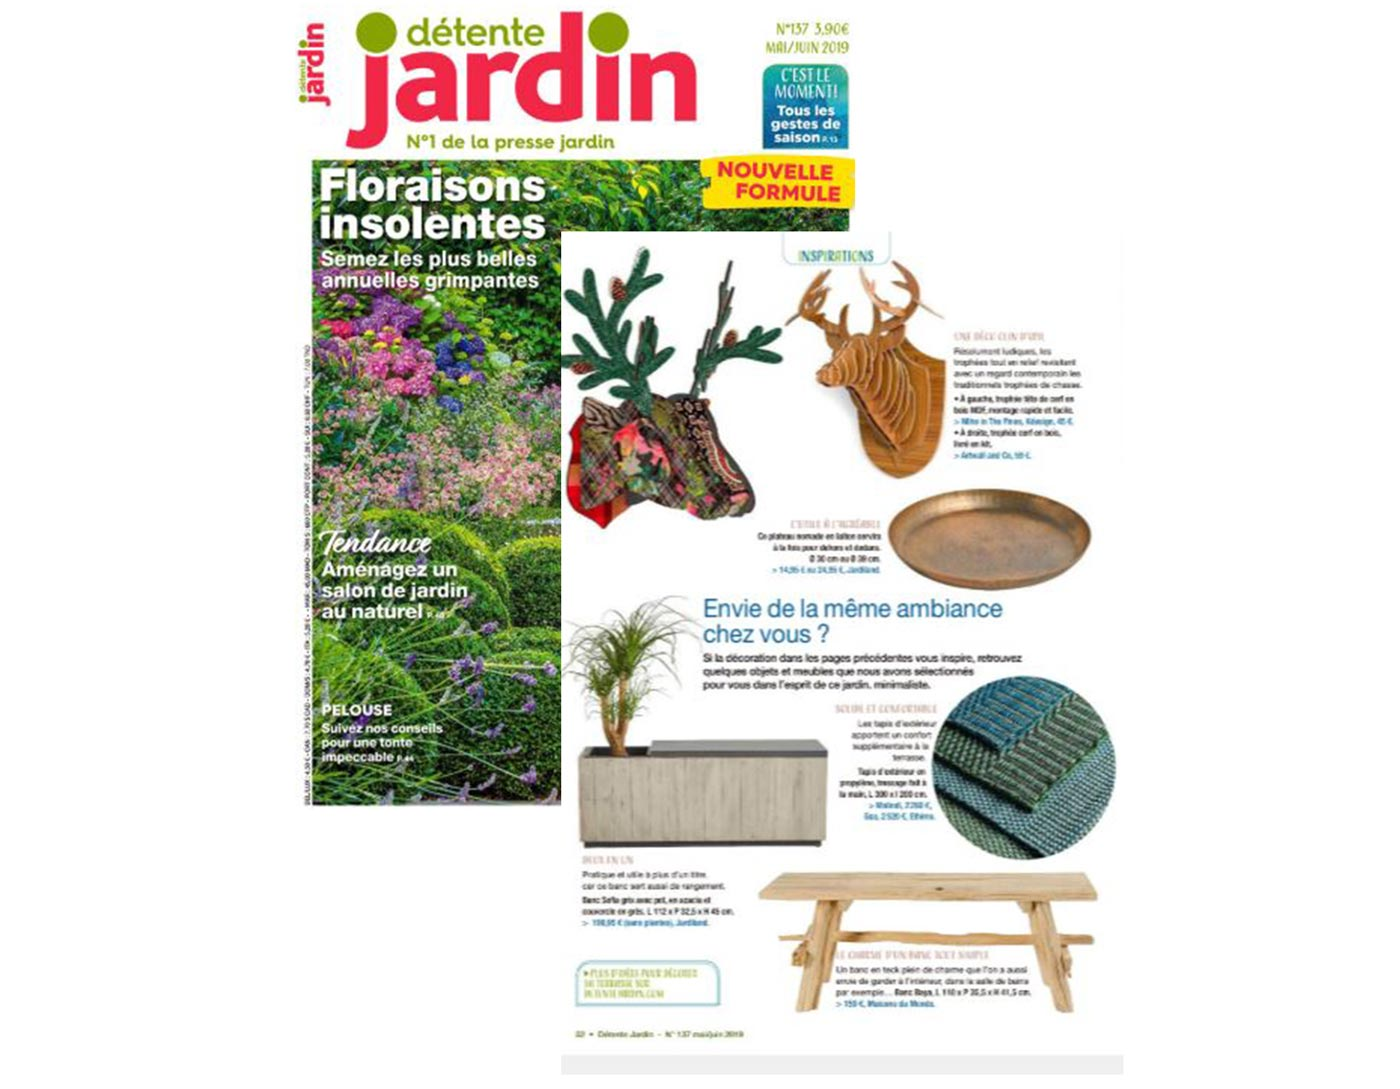 Artwall and co dans Détente jardin magazine